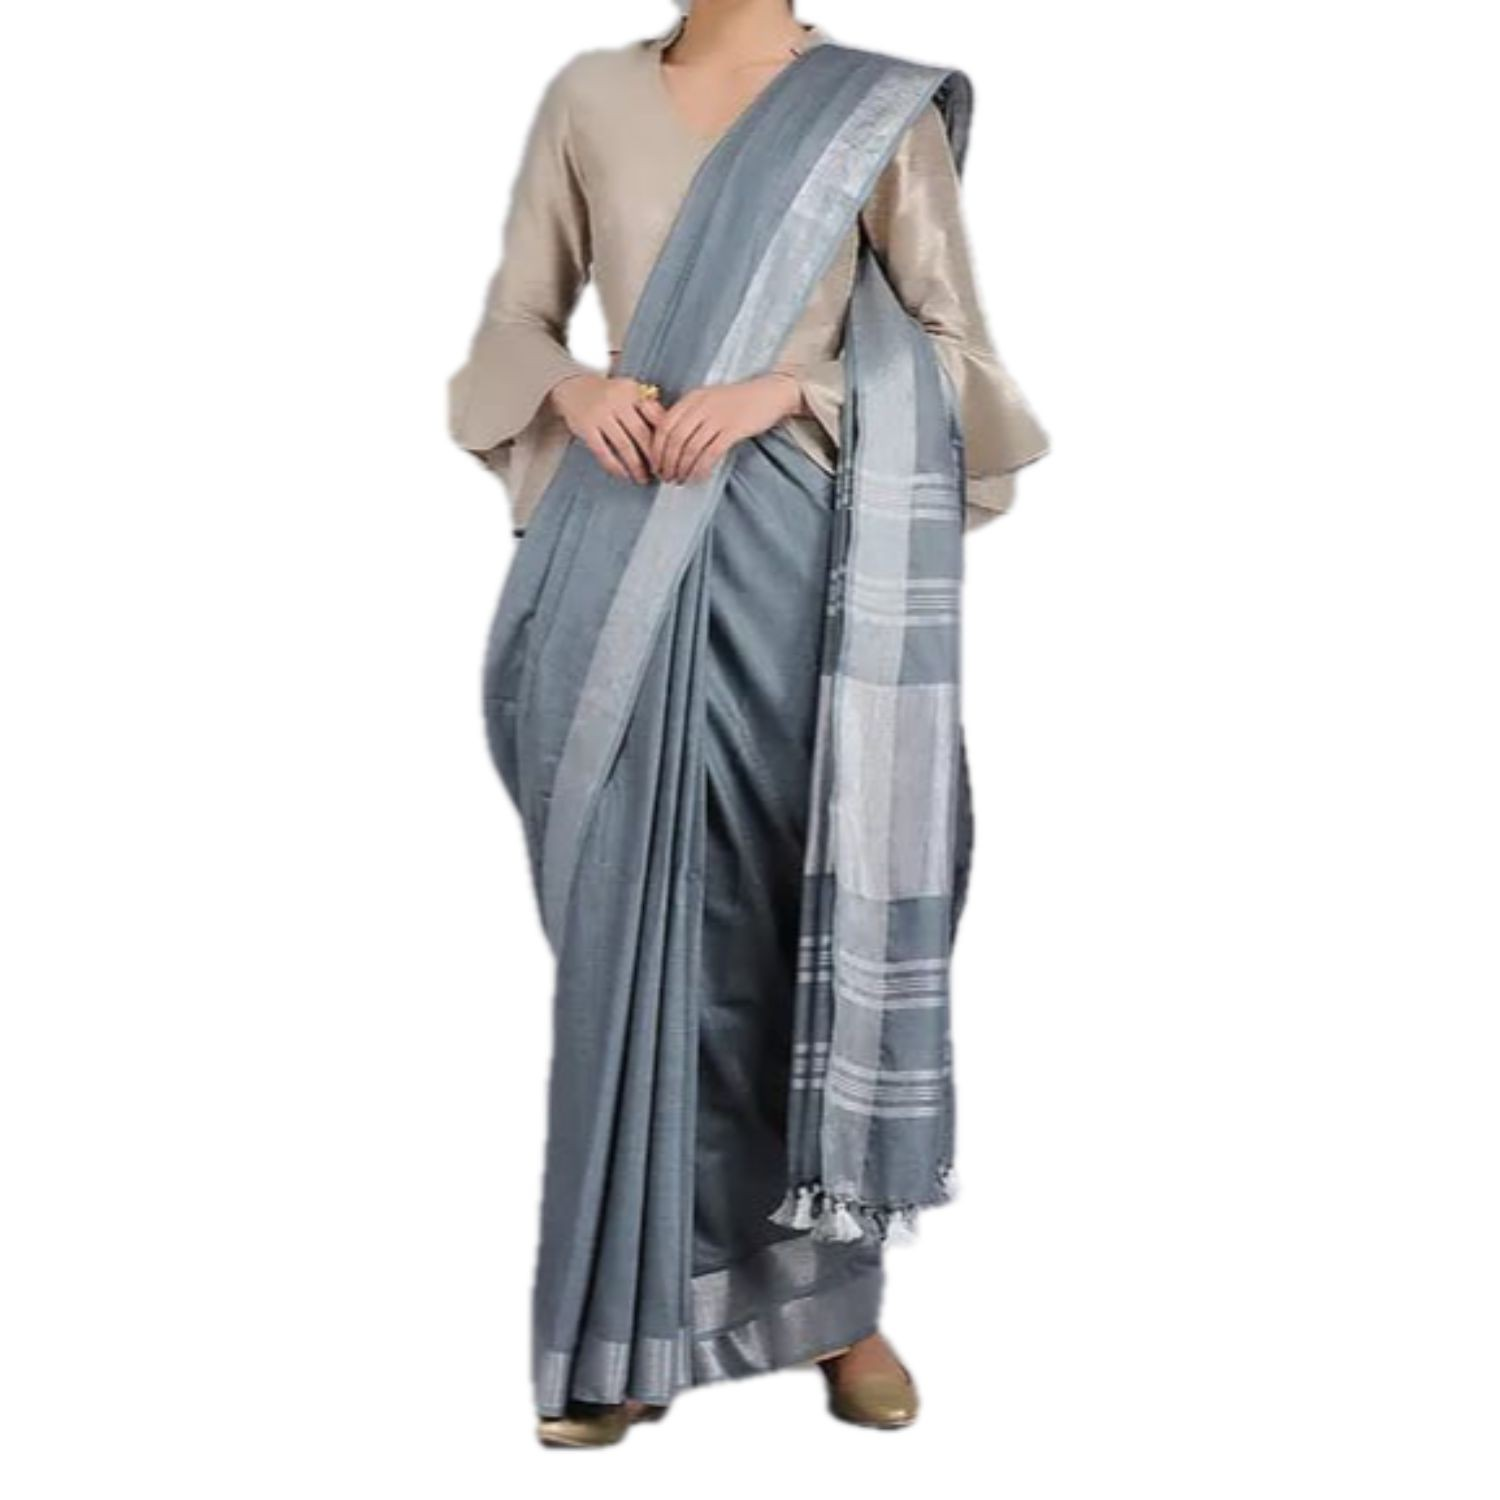 Exclusive Ethnic Indian Women's Bhagalpuri Handloom Cotton linen saree with running blouse and with Silver border with beautifully decorate soft tussels By Weaver'S Of Bhagalpur Bihar